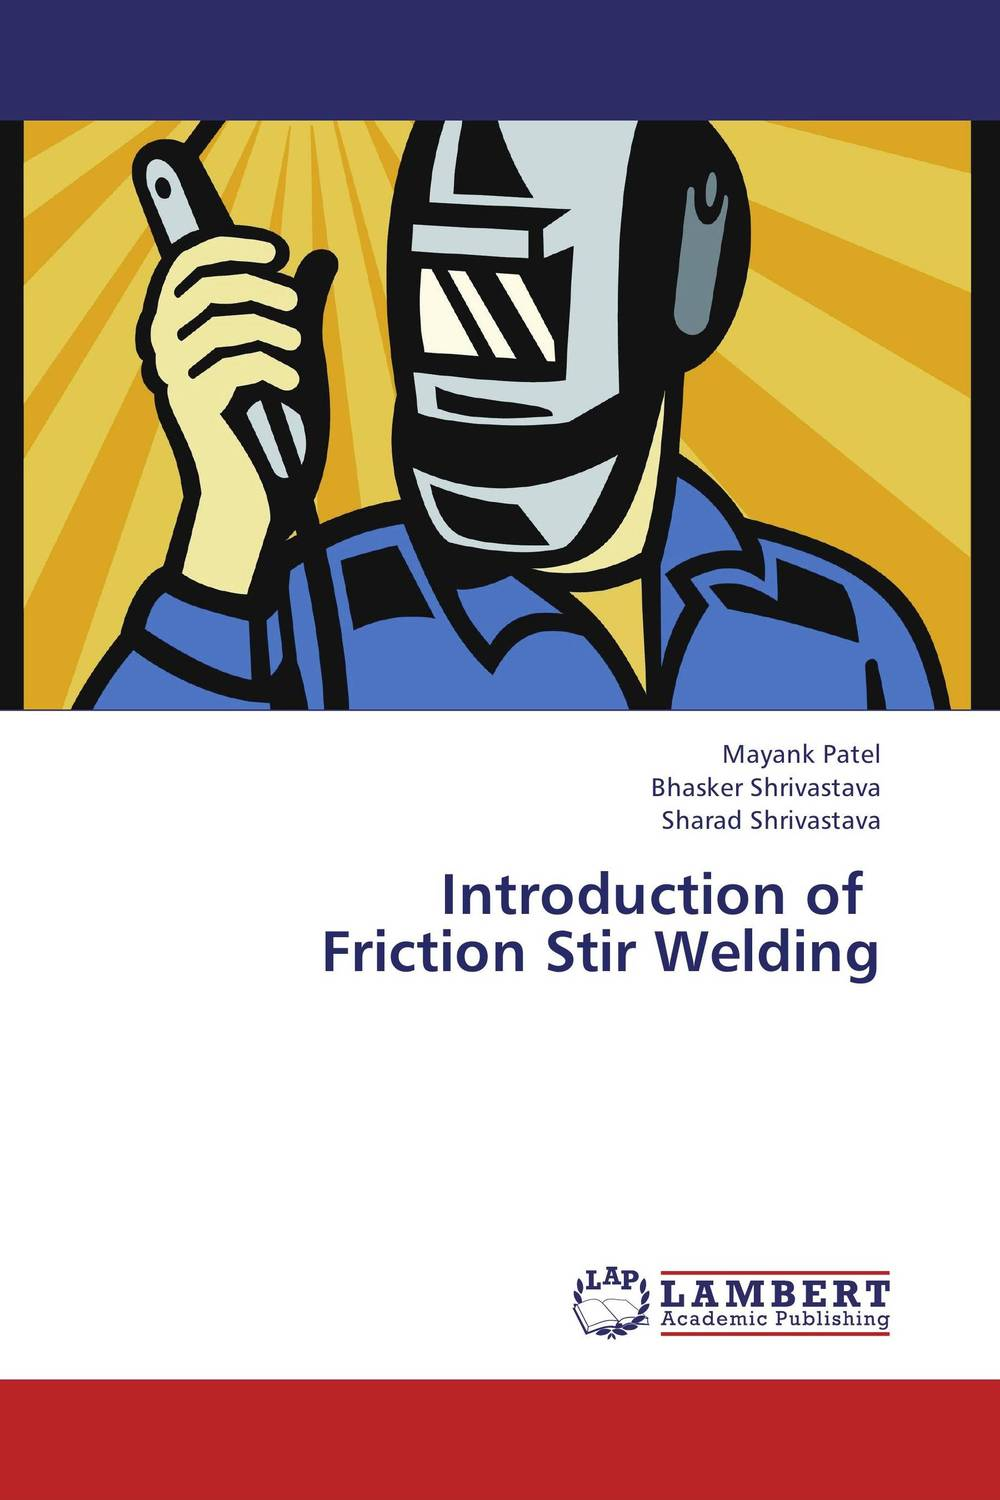 Introduction of Friction Stir Welding